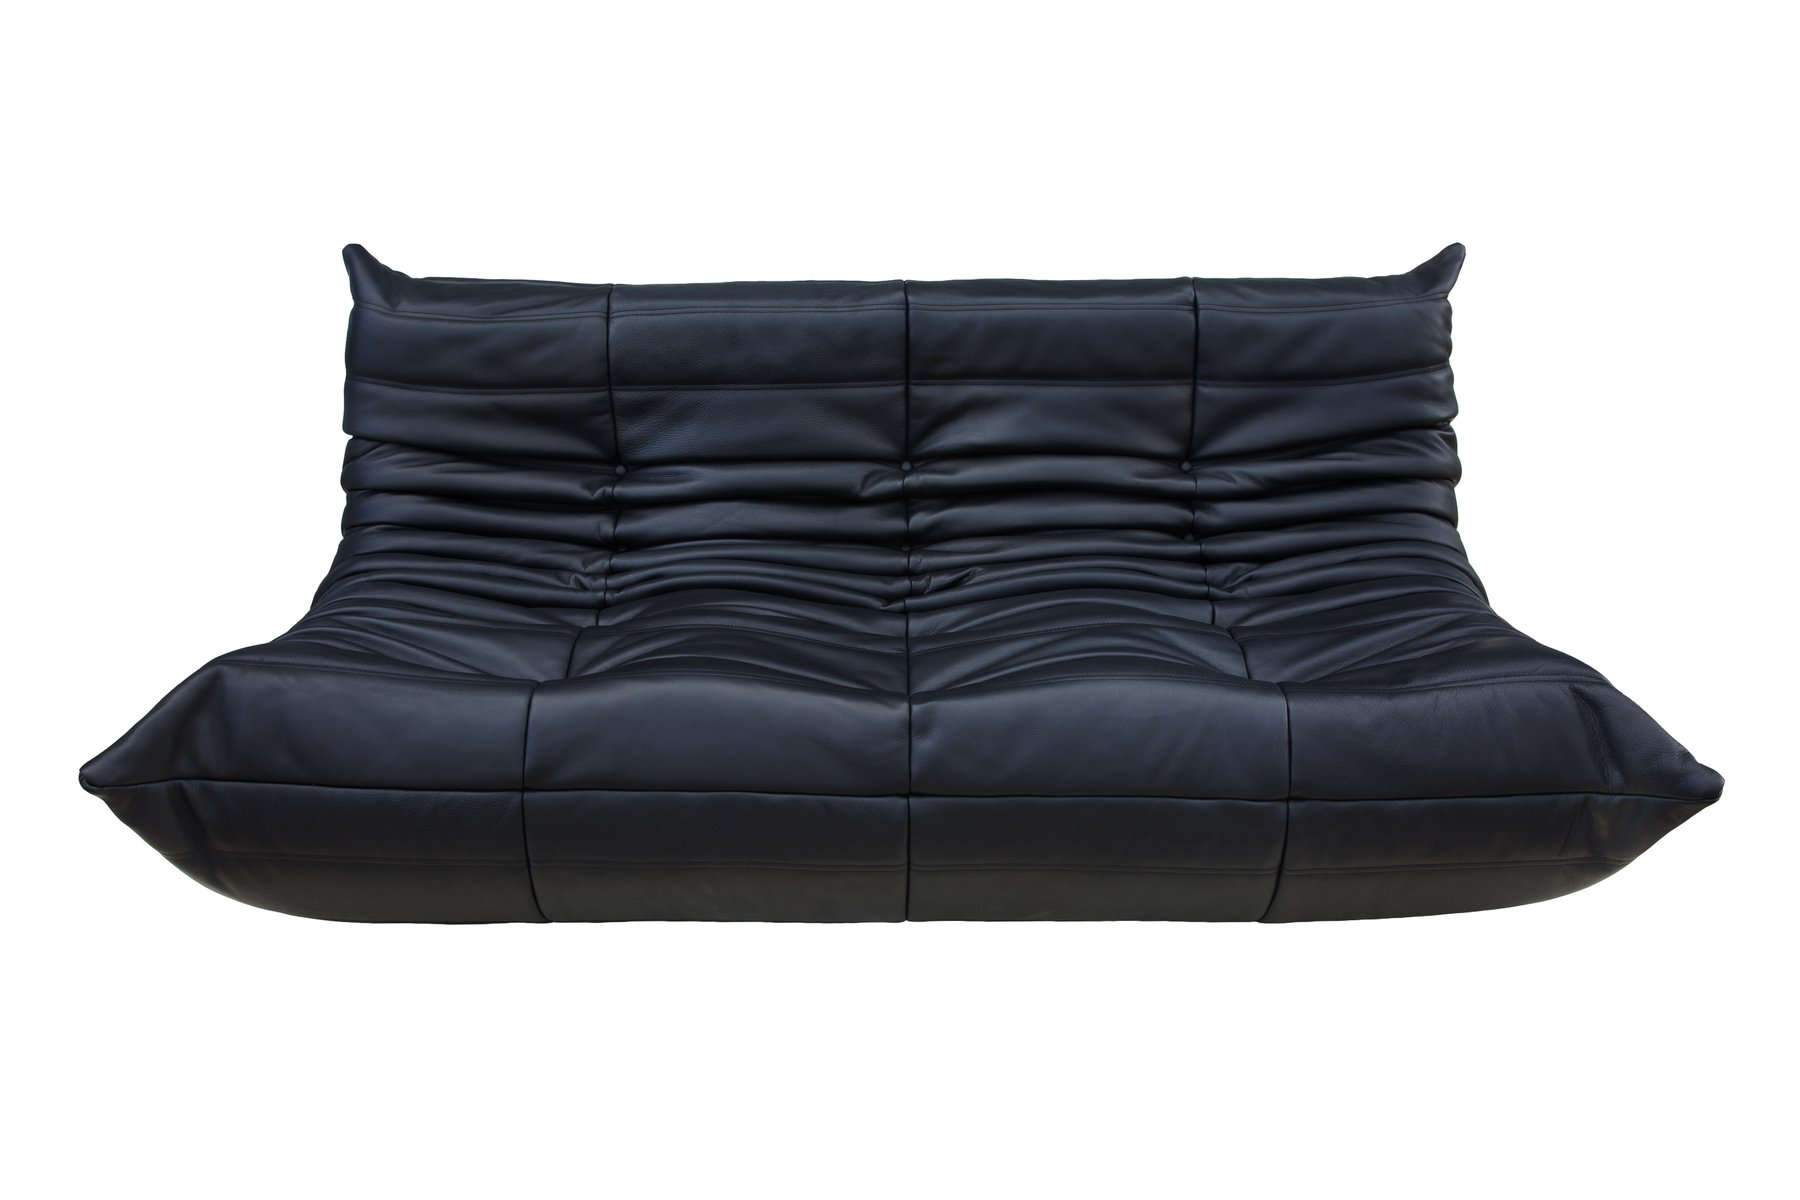 Black Leather 3 Seater Togo Sofa By Michel Ducaroy For Ligne Roset For Sale At Pamono